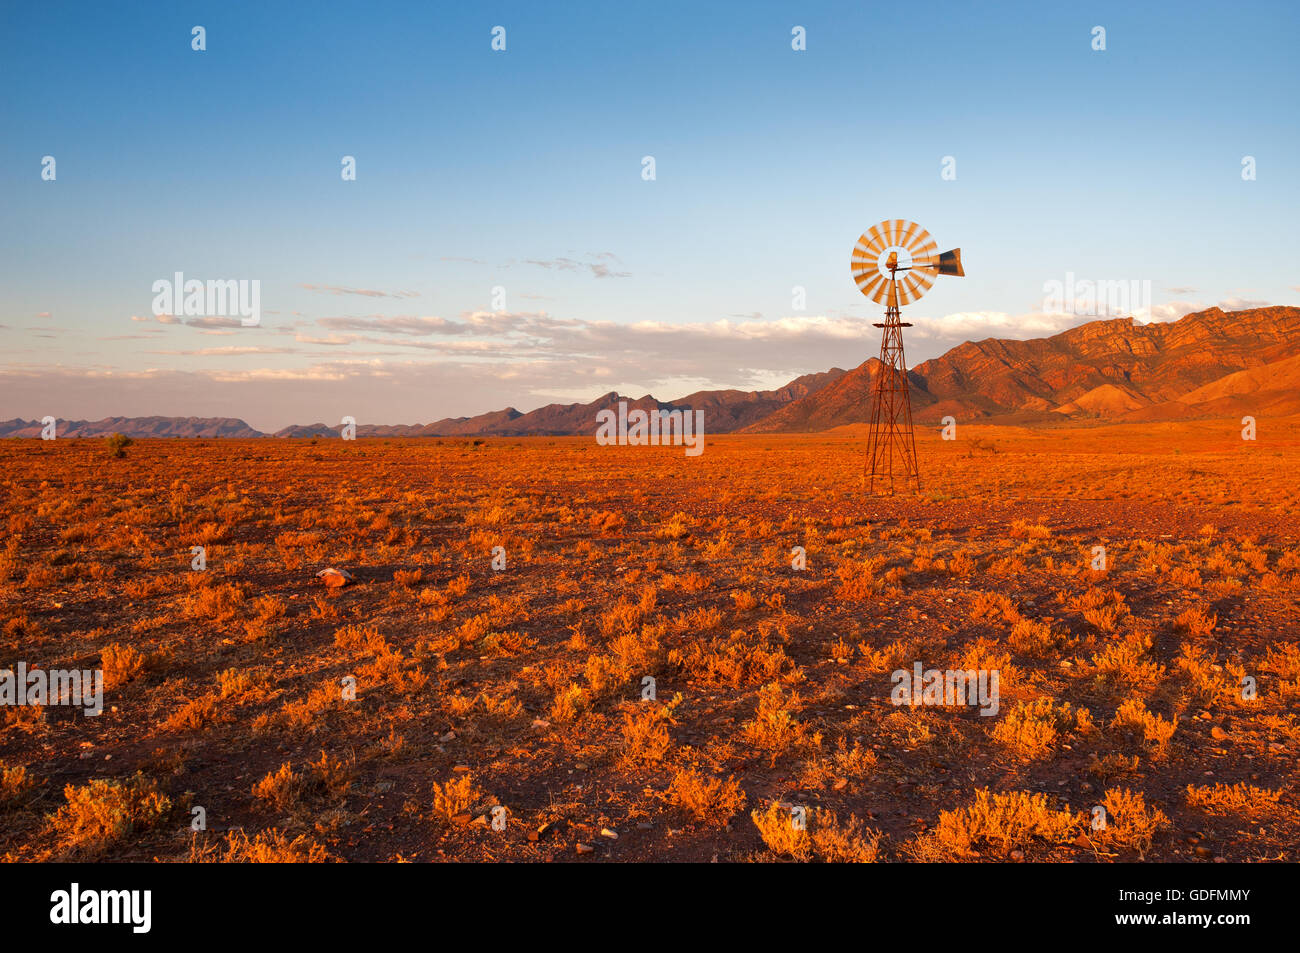 Typical Australia - Windmill in the red hue of a sunset. - Stock Image